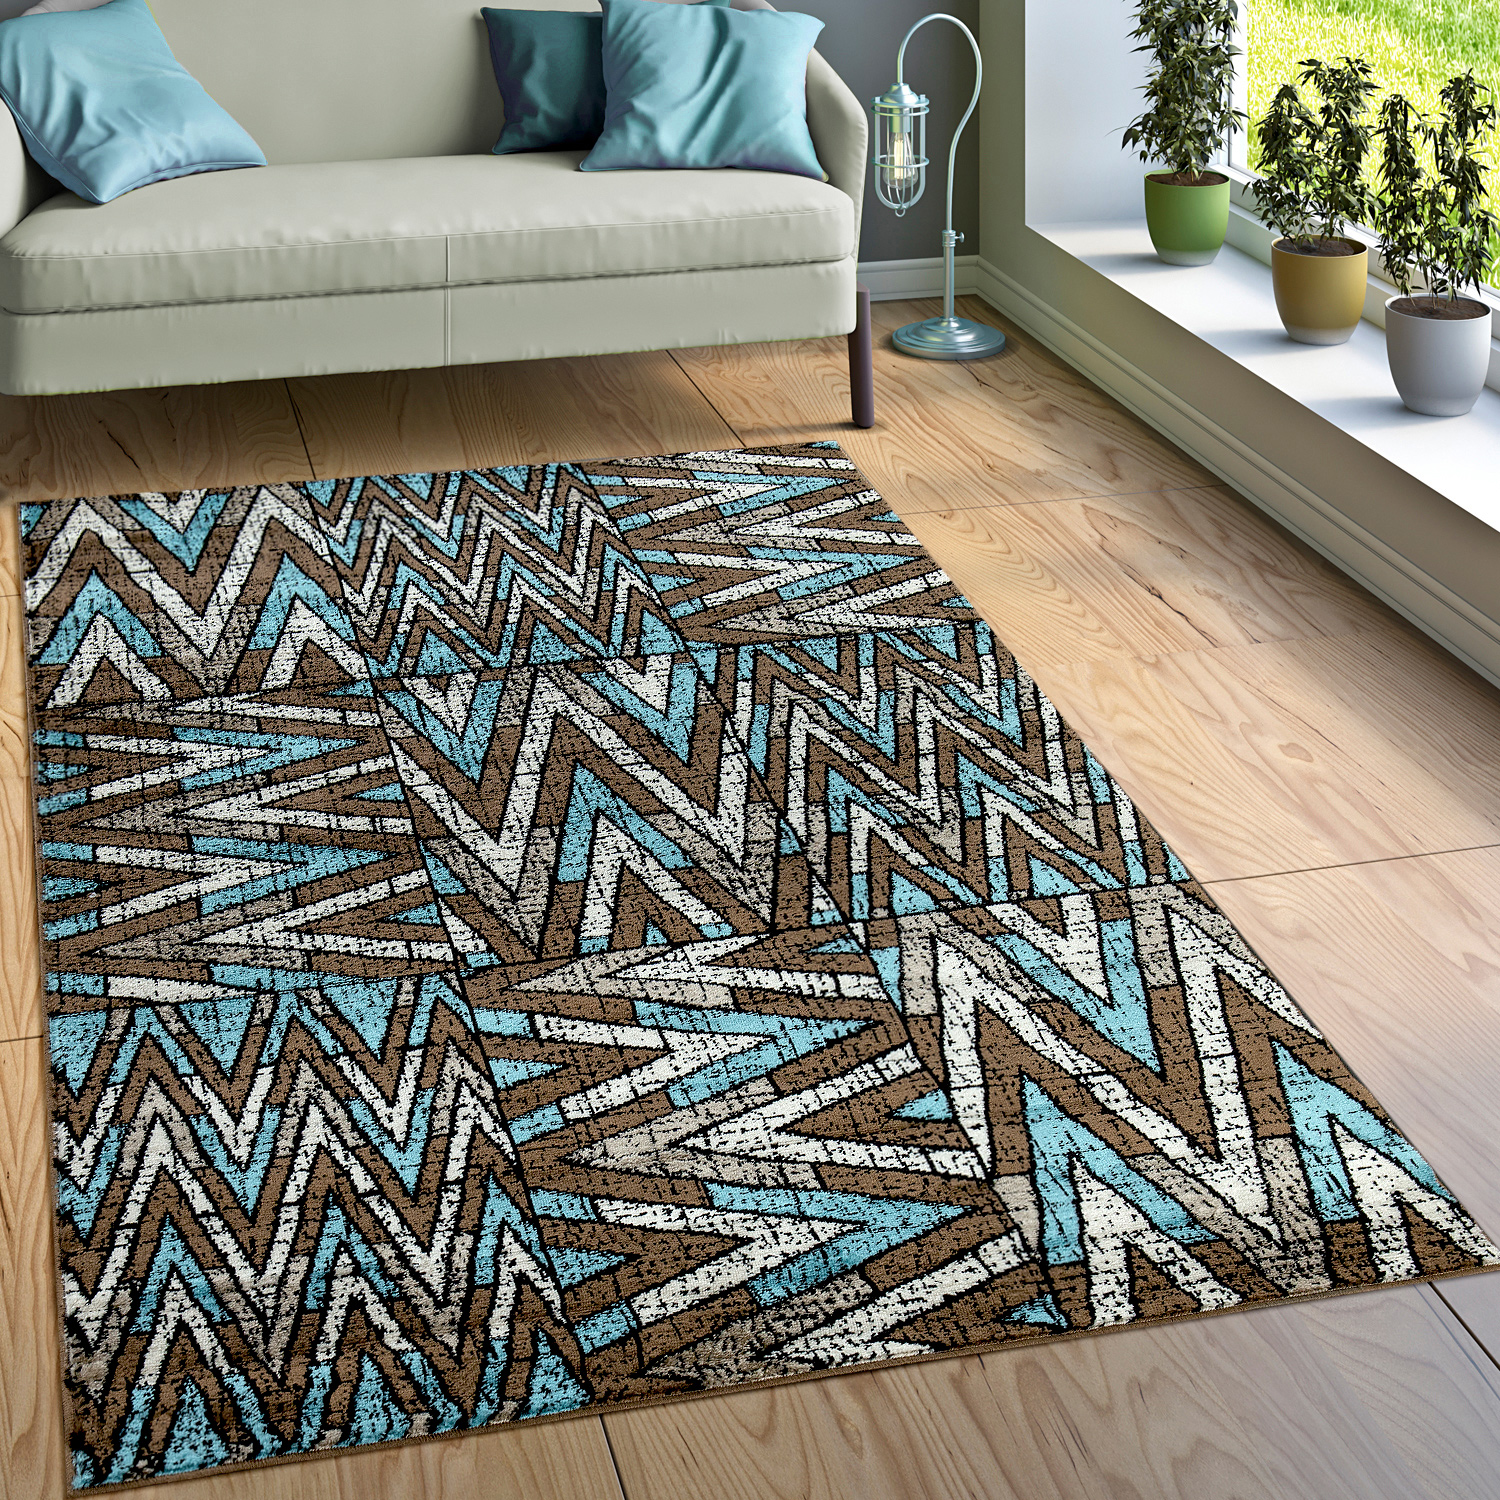 Turquoise And Brown Rug: Rug Zigzag Pattern Brown Turquoise